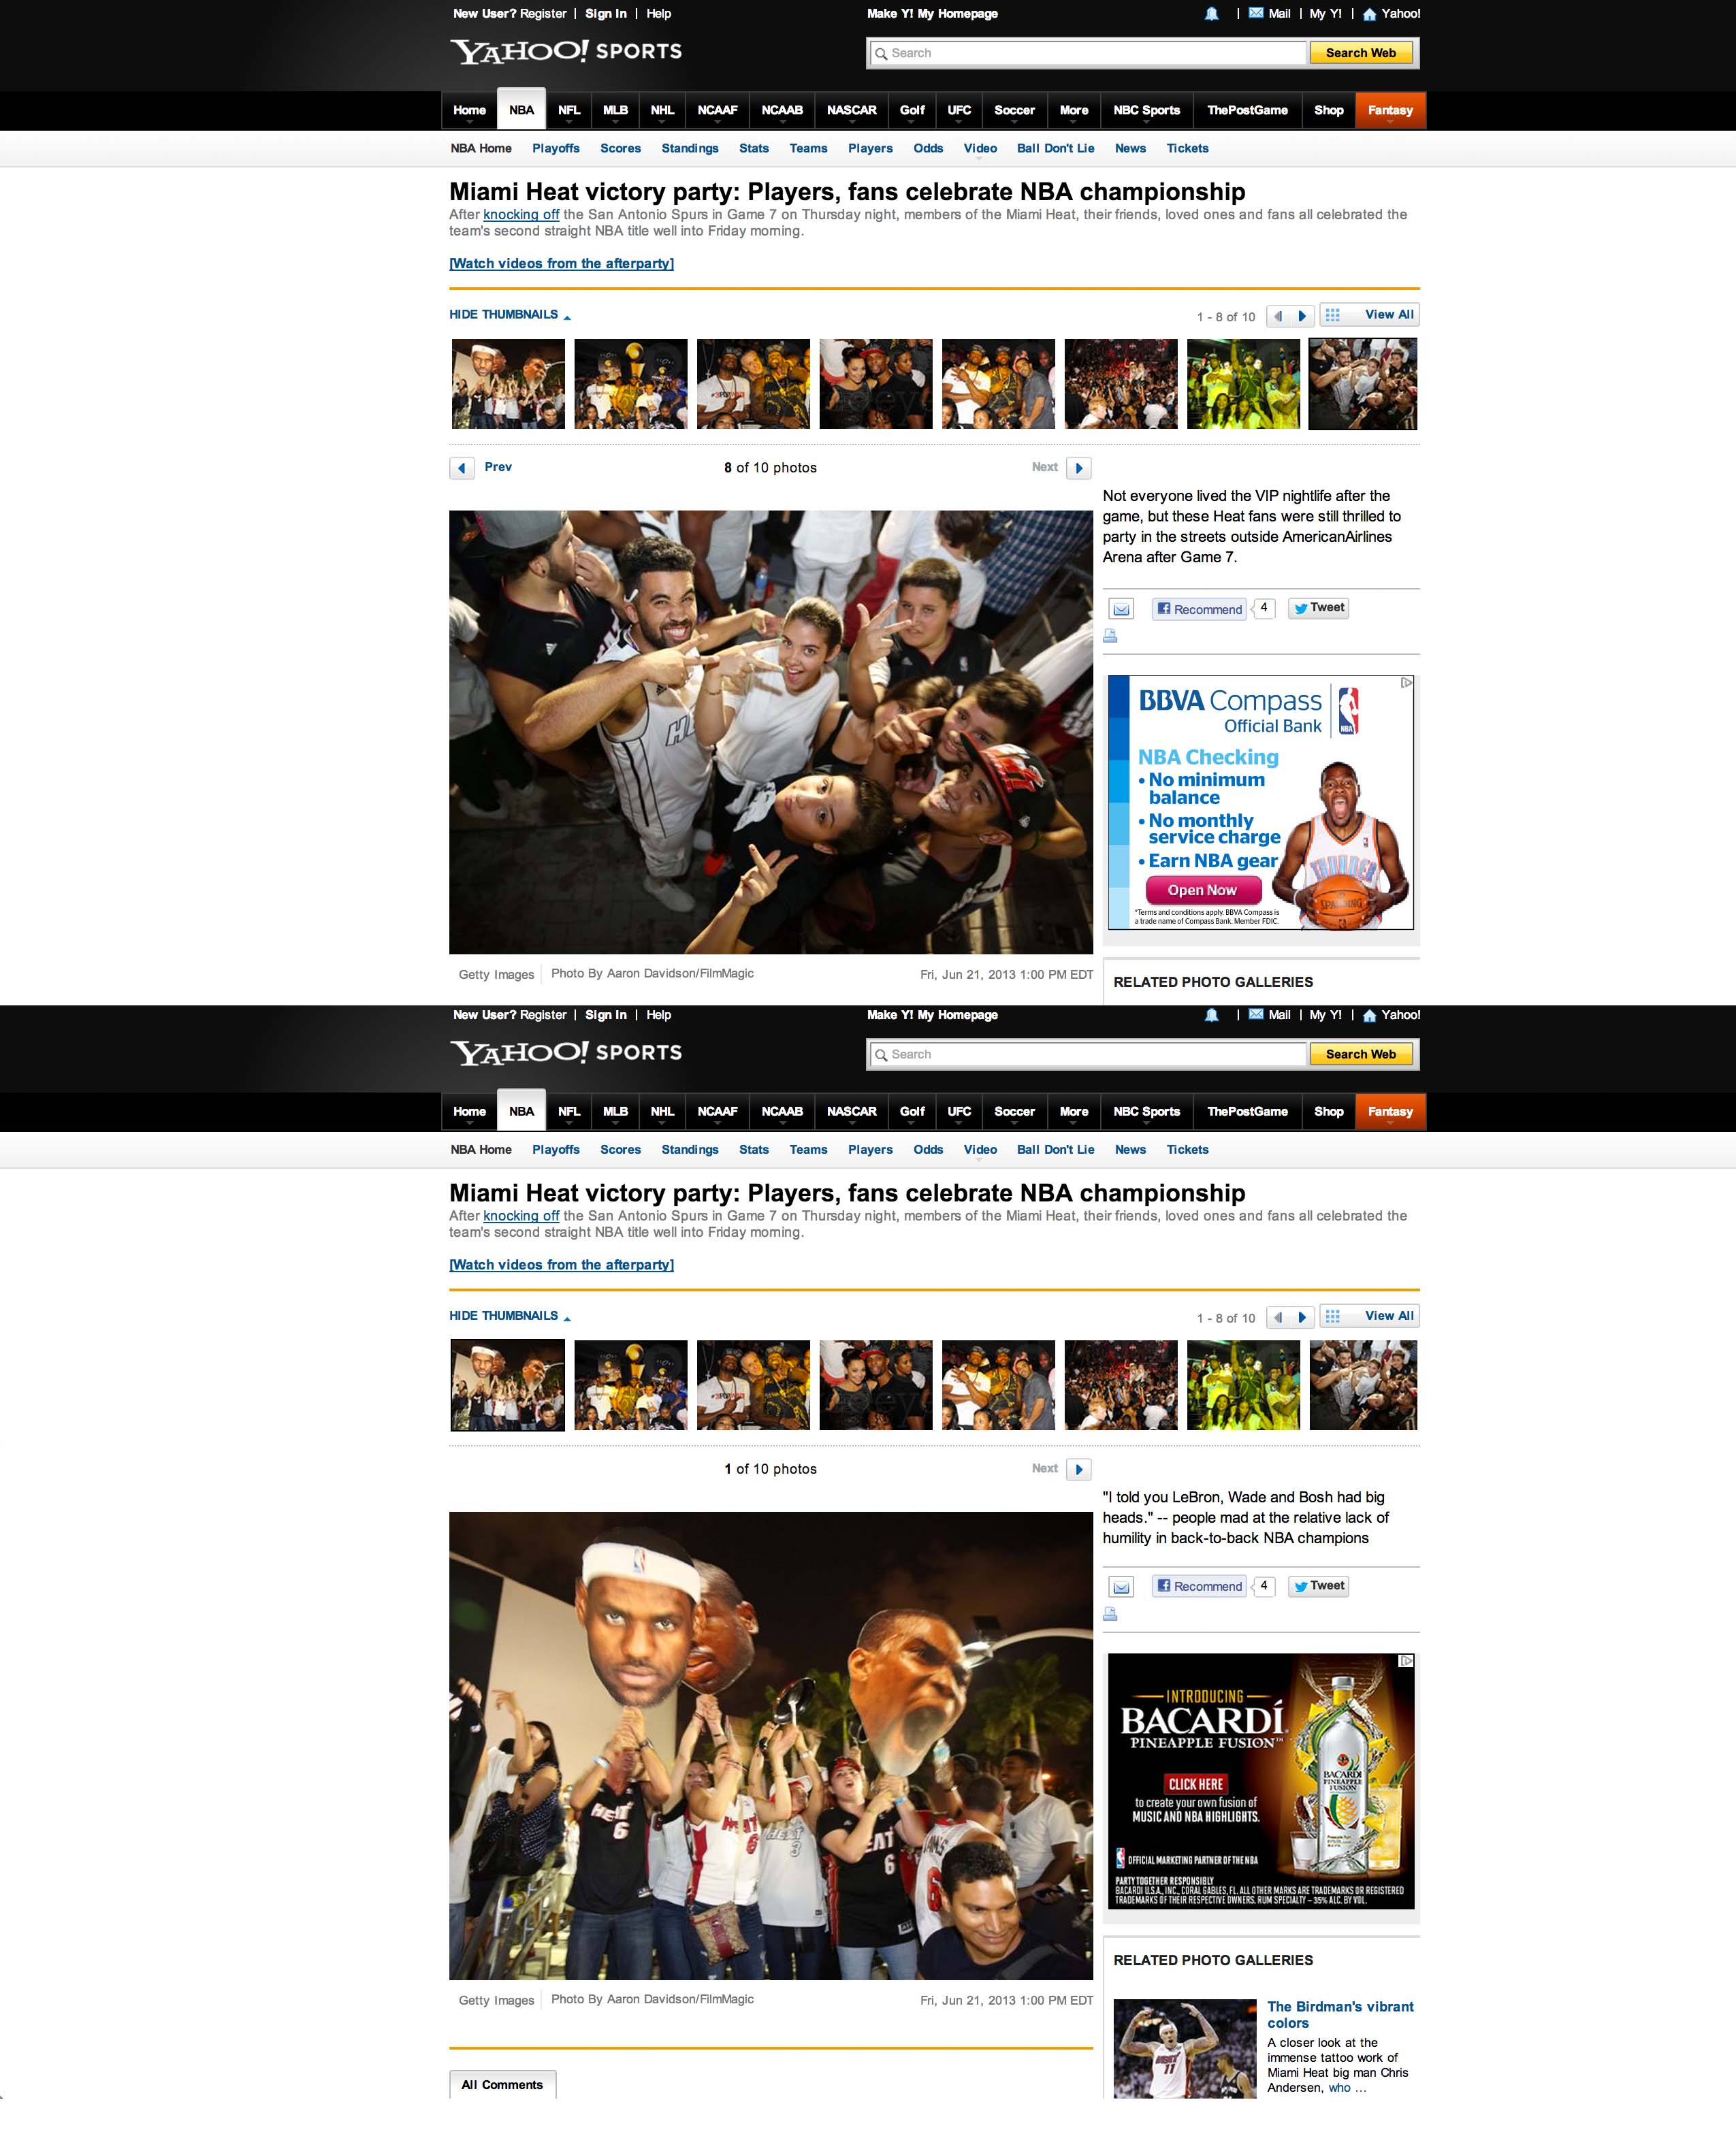 Miami Heat Fans on Yahoo Sports